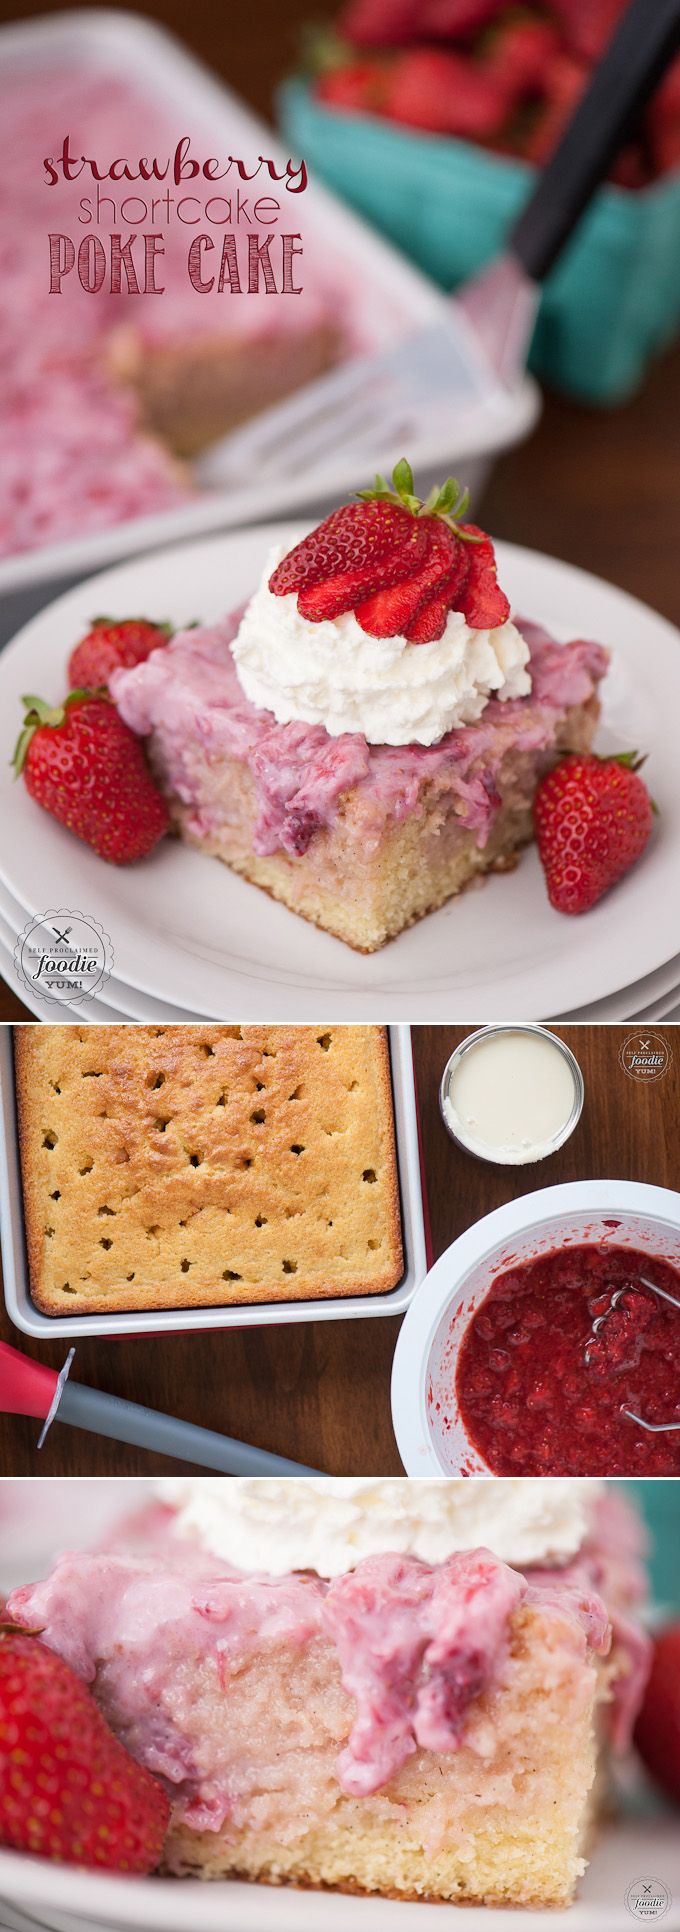 Fresh summer strawberries, sweetened condensed milk, and whipped cream transform a basic vanilla cake into a heavenly Strawberry Shortcake Poke Cake. (Vanilla Cake)